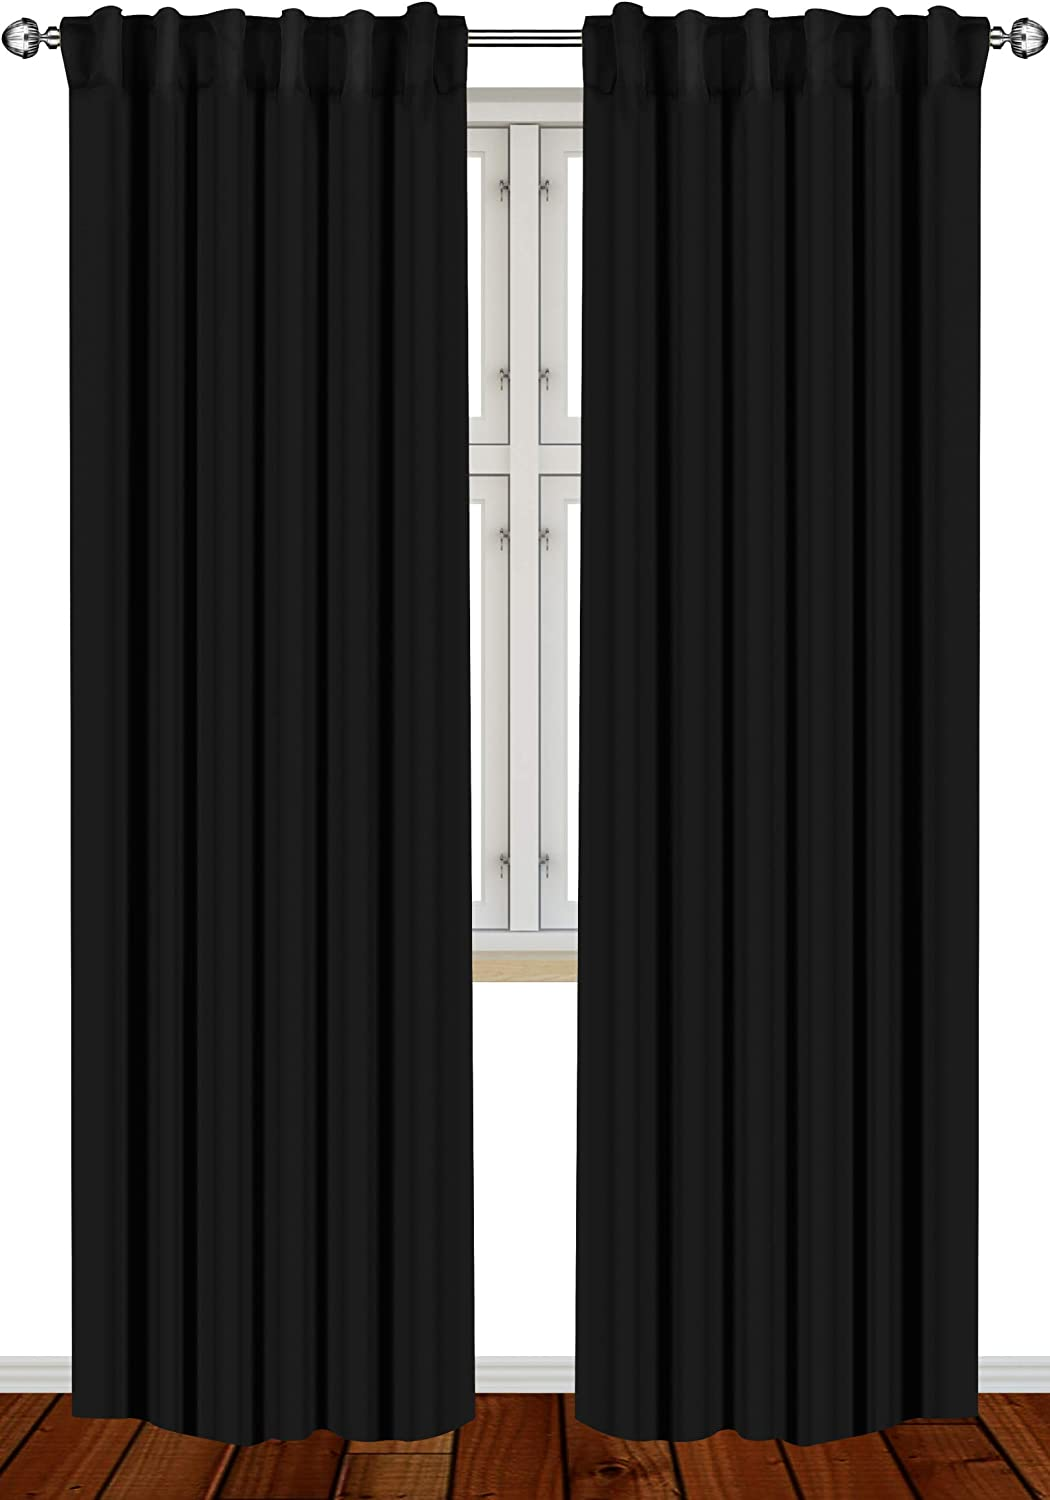 Blackout Curtains 2 Panels for Room Darkening Thermal Insulated Window Black